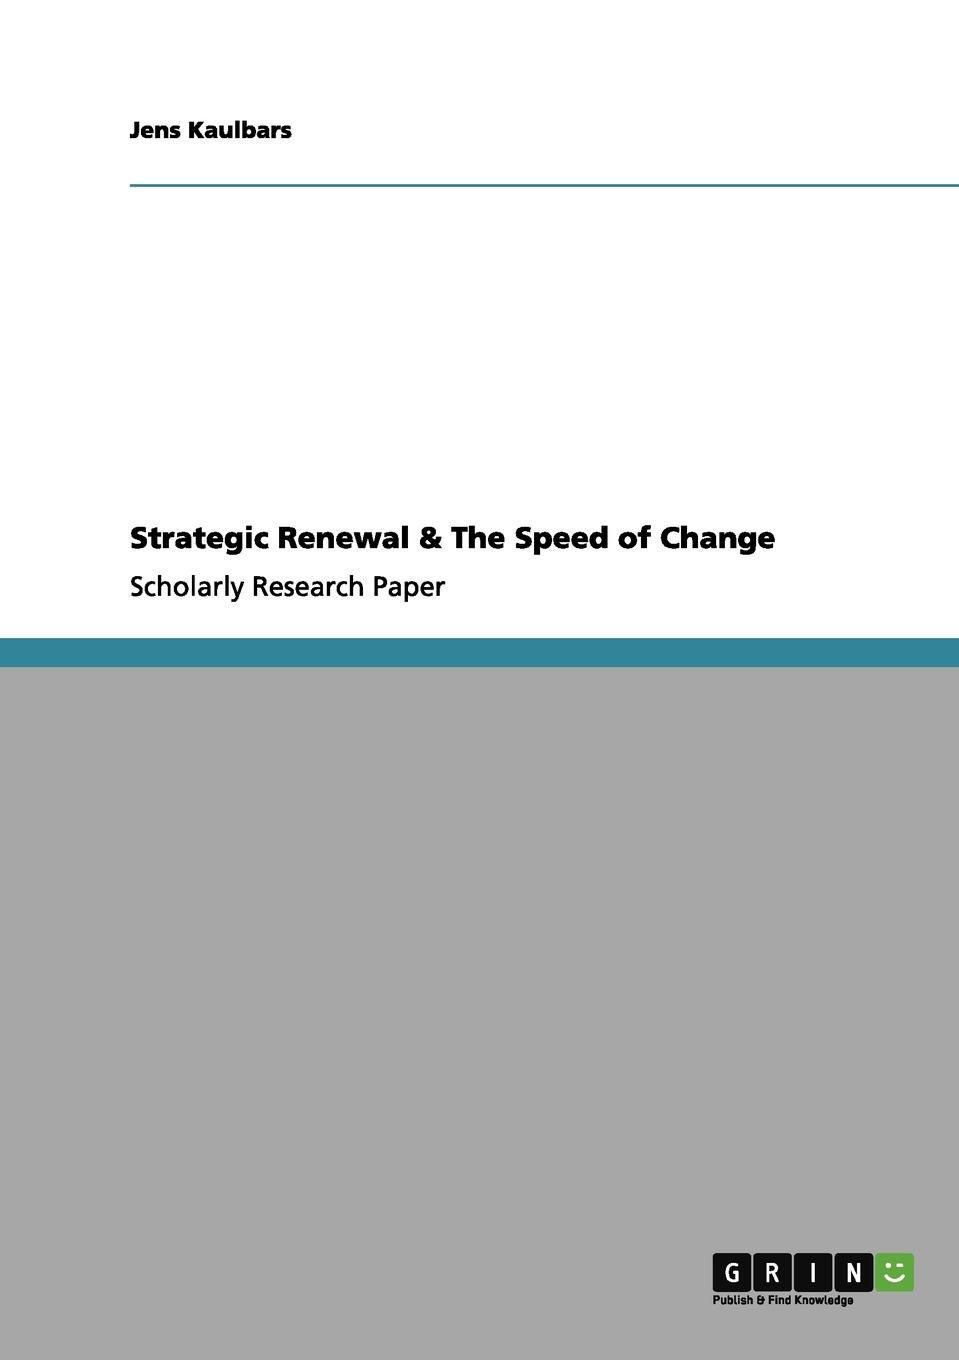 Jens Kaulbars Strategic Renewal . The Speed of Change demystifying learning traps in a new product innovation process